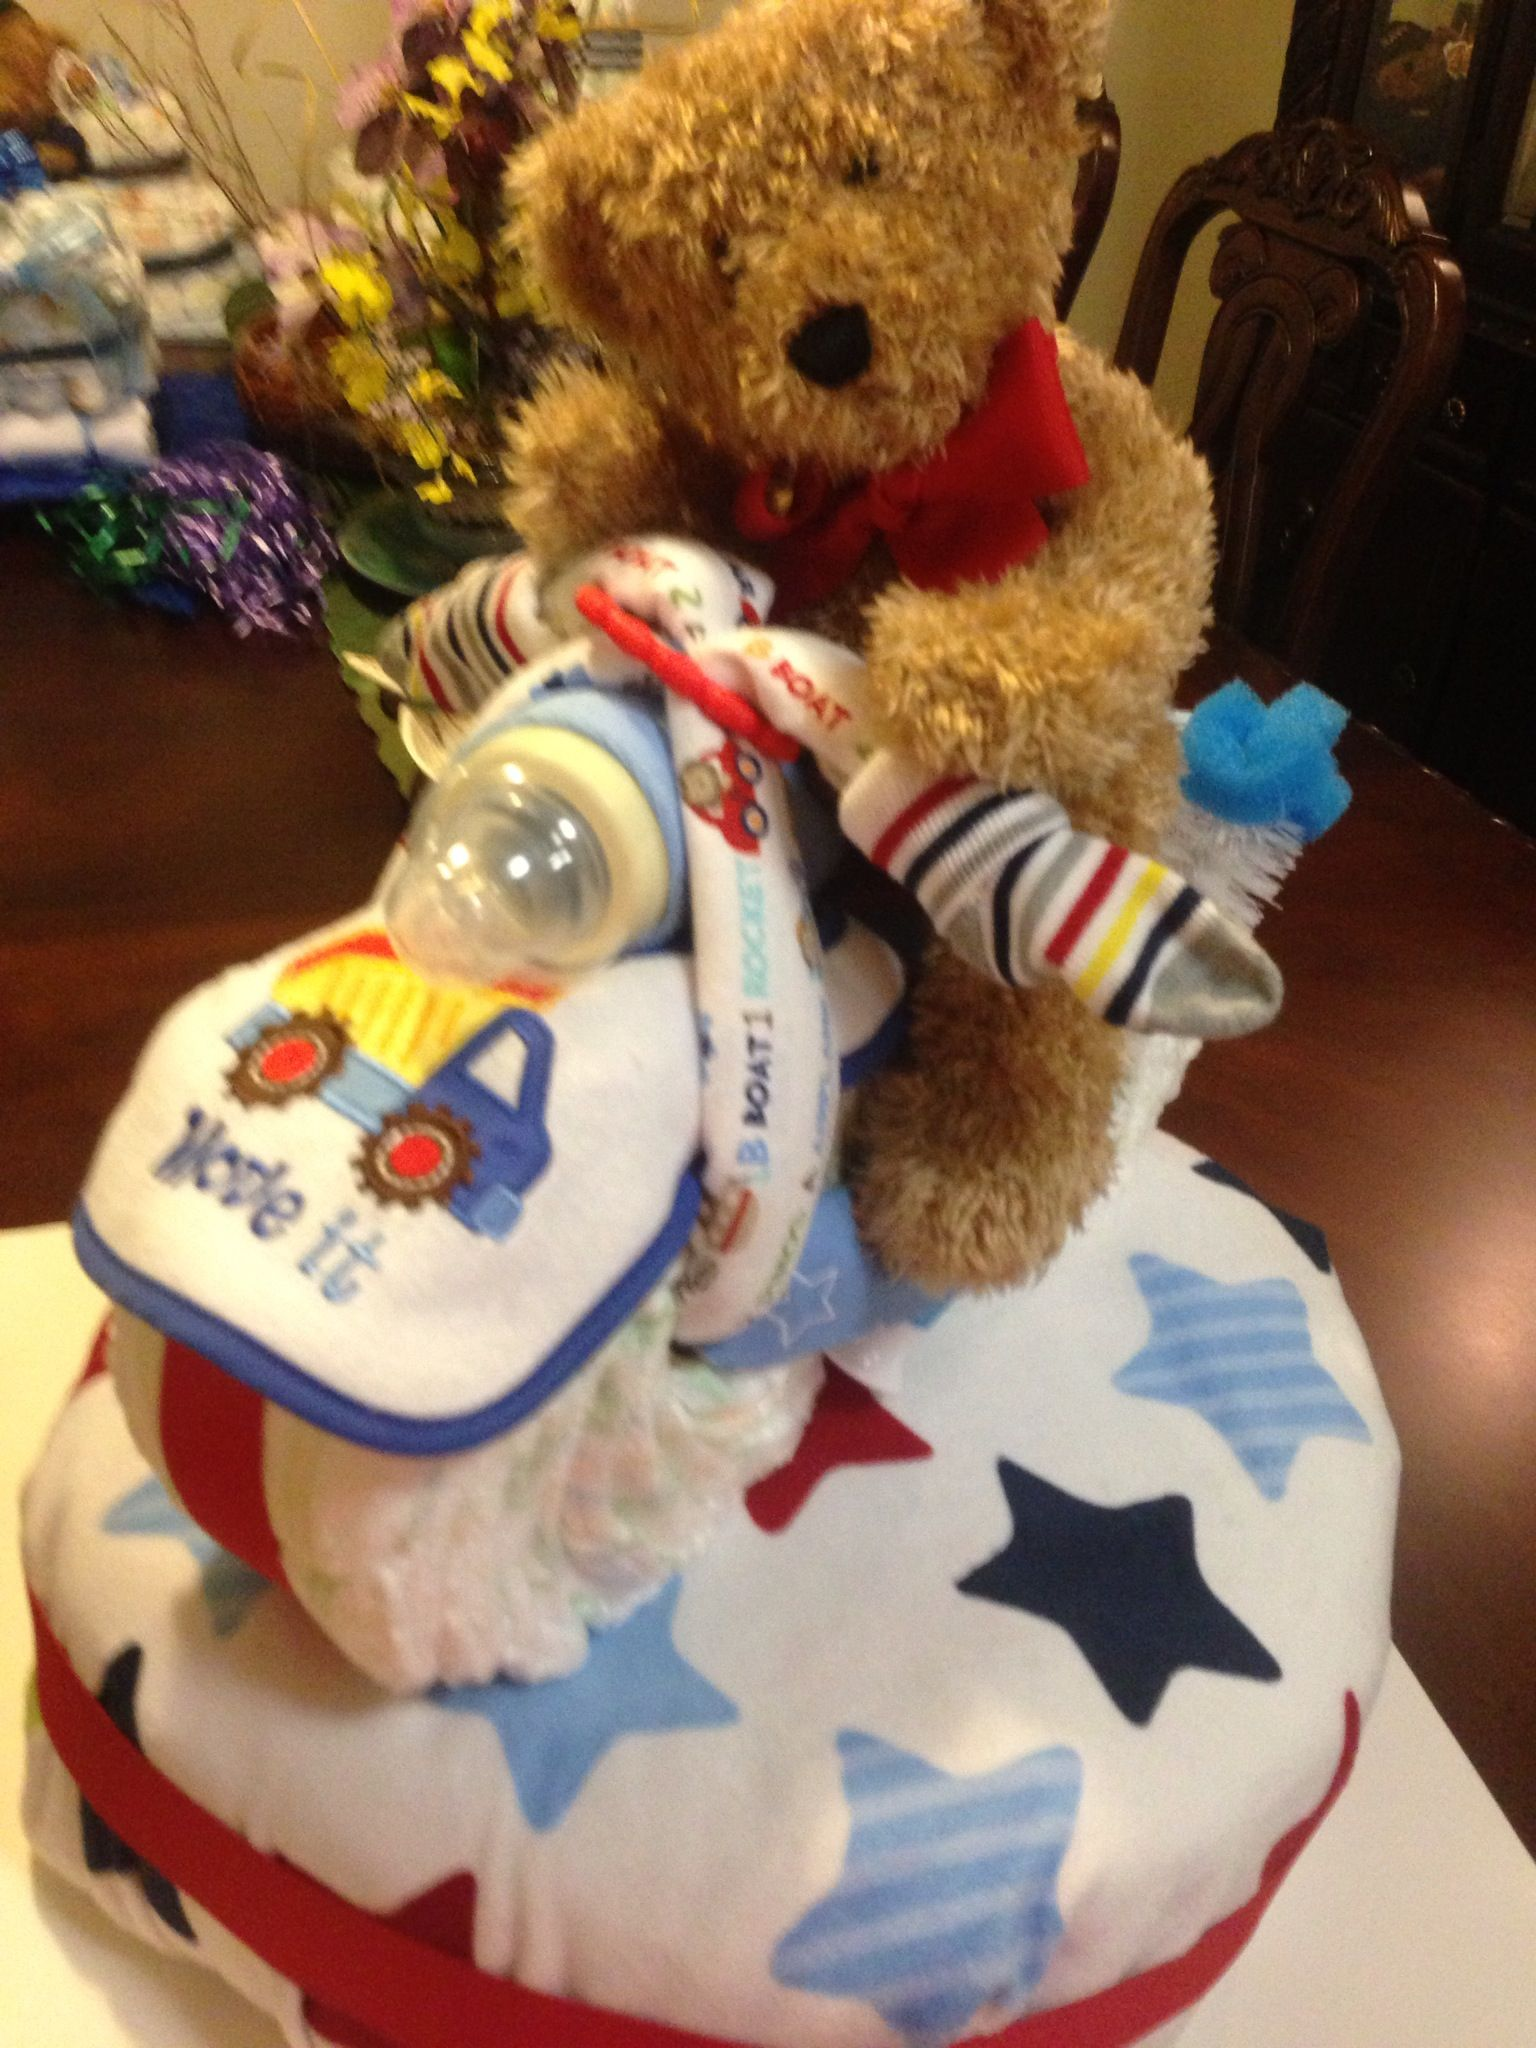 Diaper cake stand with motorcycle diaper diaper cake cake